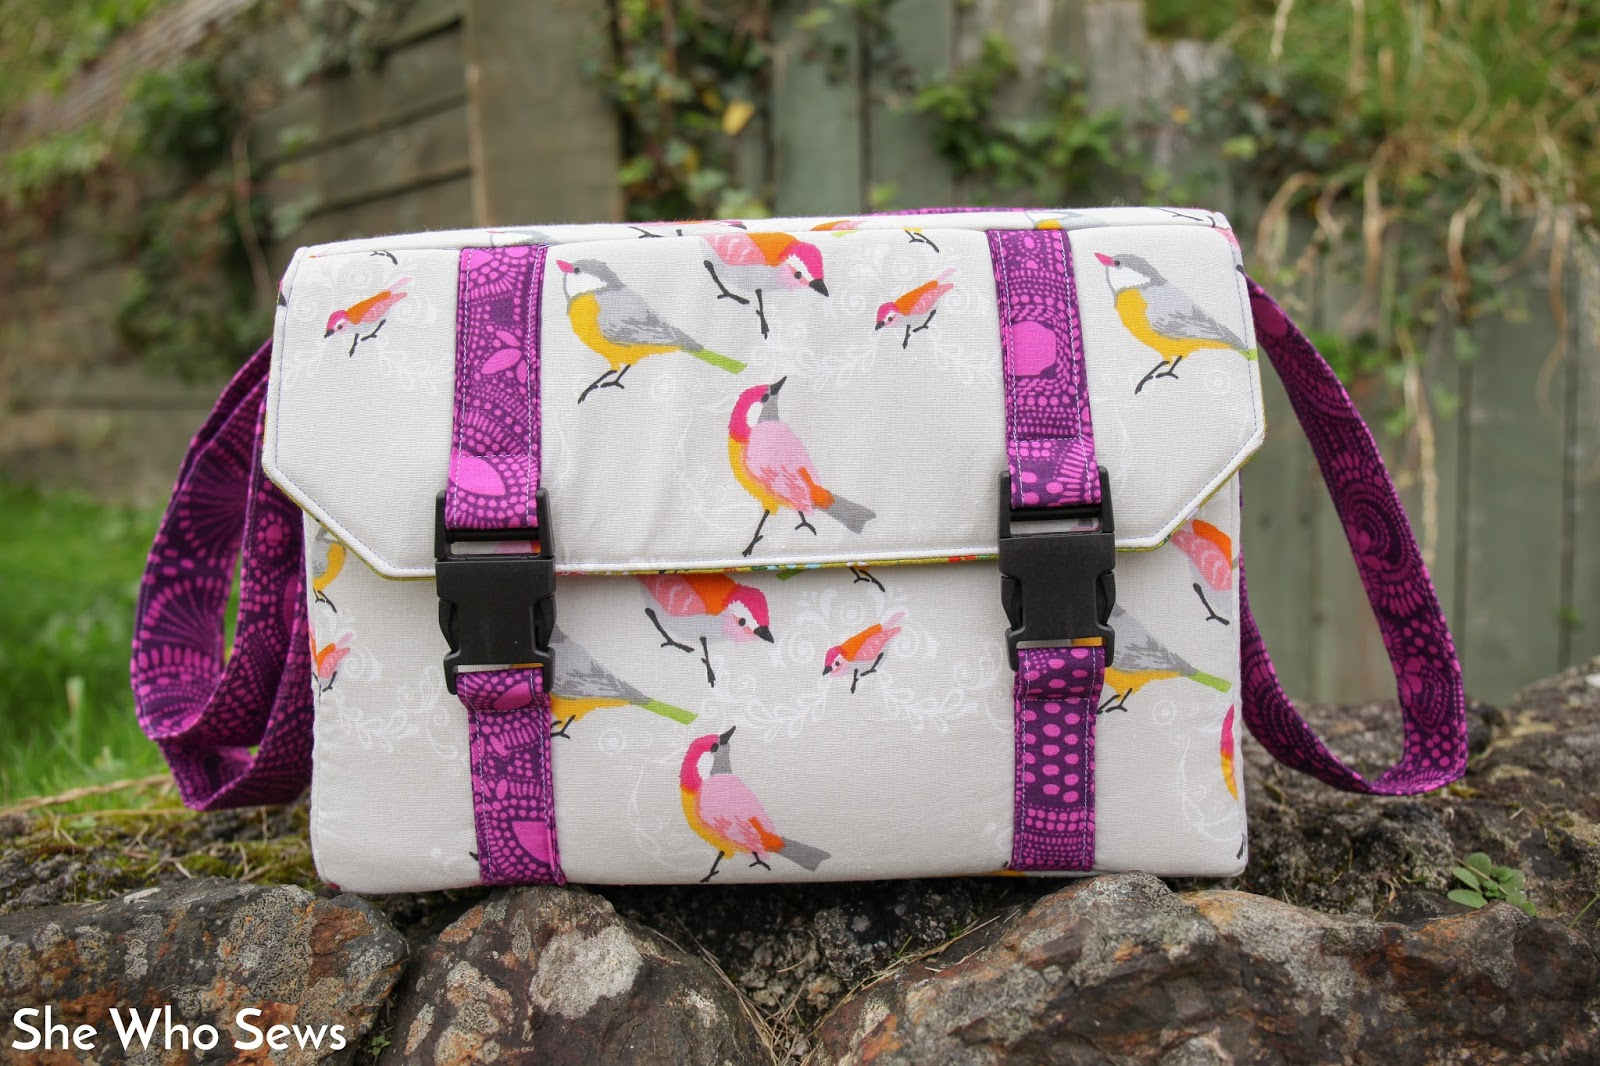 b37714ea7e3 So I bought myself the Ansel camera bag pattern by Sew Sweetness to make  myself a bespoke bag for my needs. I hurriedly read the instructions and  looked at ...